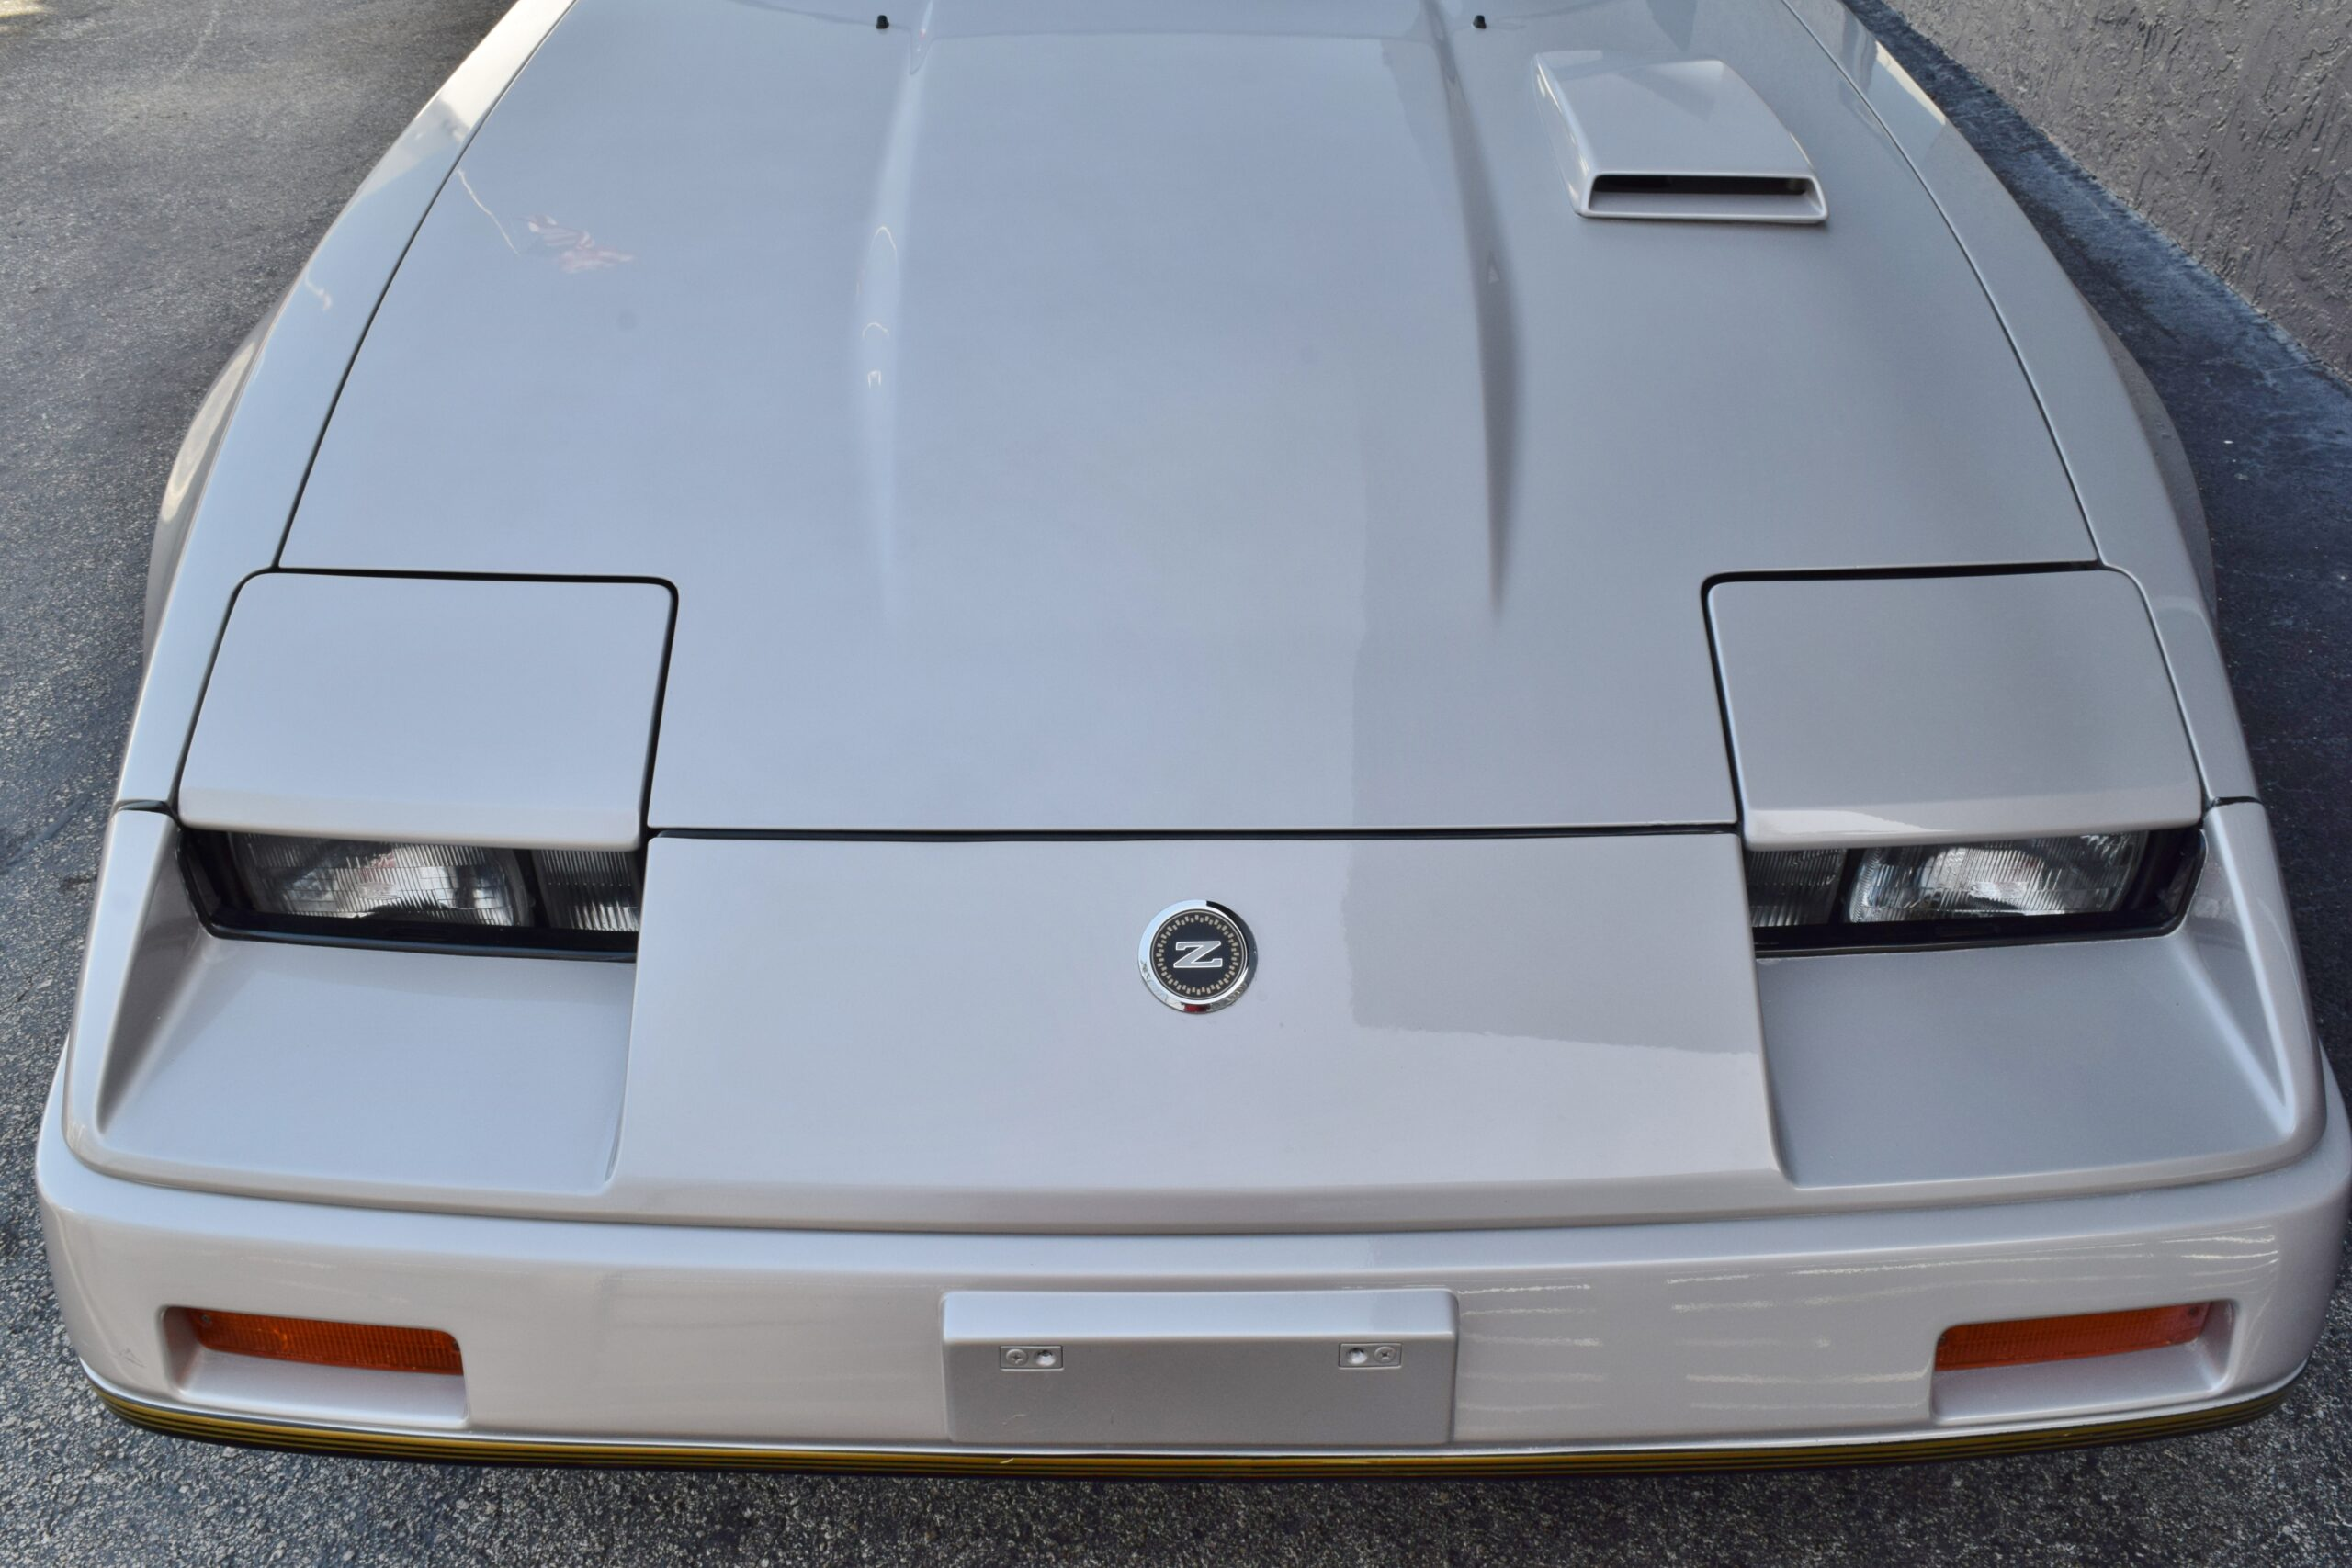 1984 Nissan 300ZX Turbo – Anniversary Edition – Z31 Rare Spec 1 Year Only 1 of 300-Low Miles-Unmodified- T TOP -5 Speed- Collectible